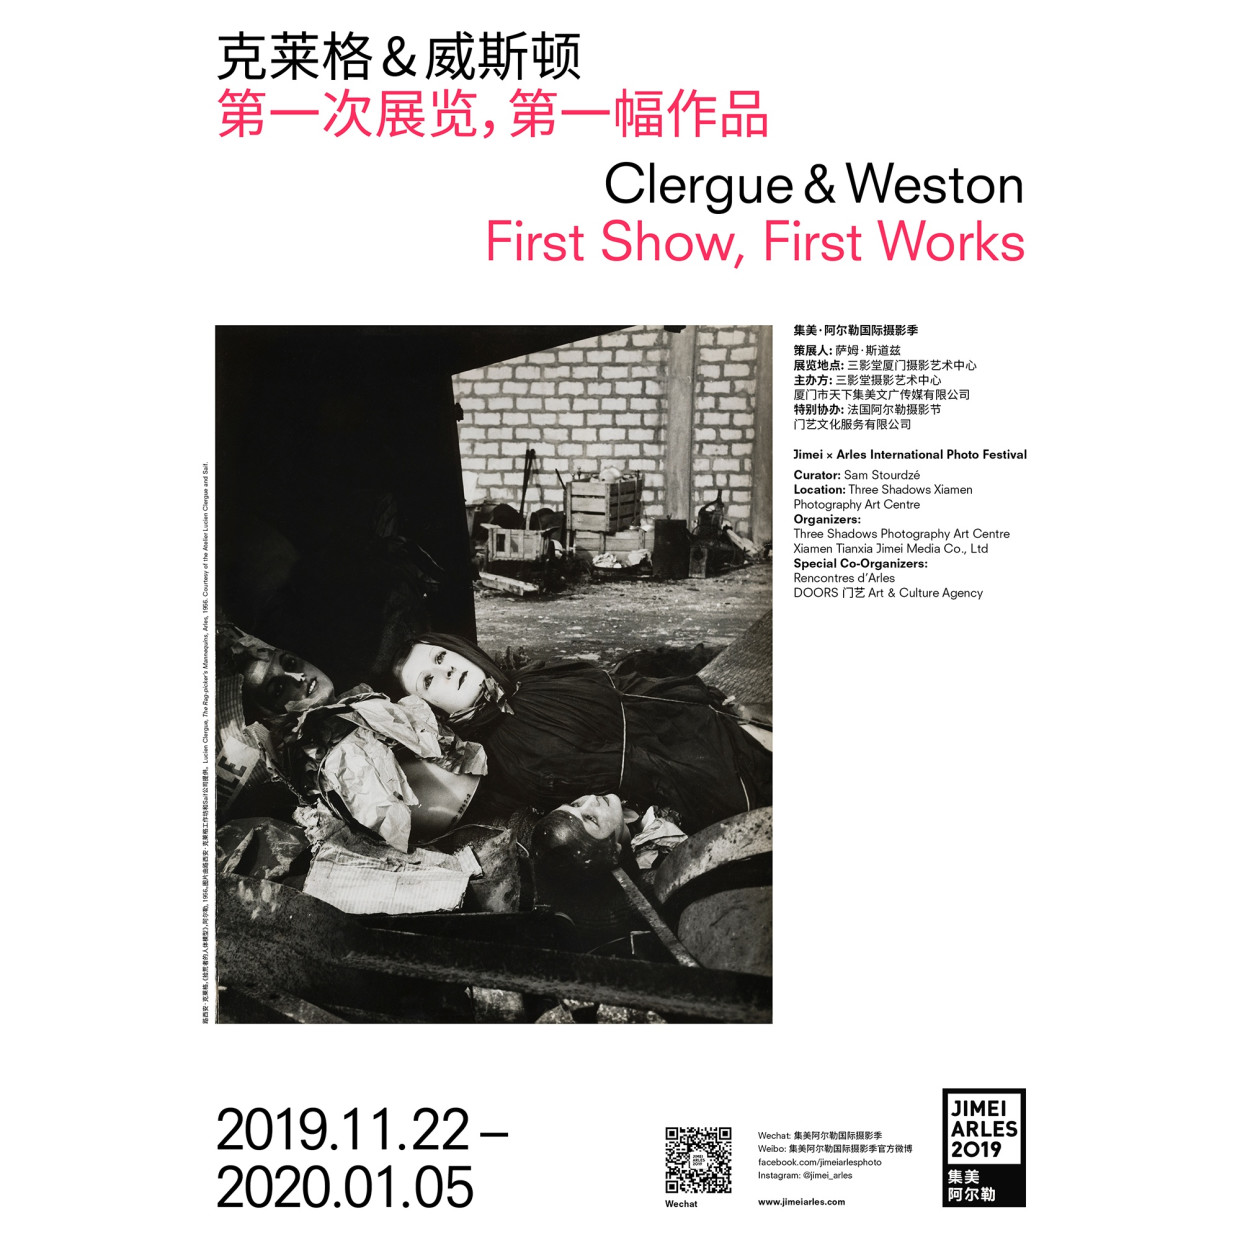 CLERGUE & WESTON FIRST SHOW, FIRST WORKS CURATED BY SAM STOURDZÉ In July 1970, the Festival d'Arles opened the first...